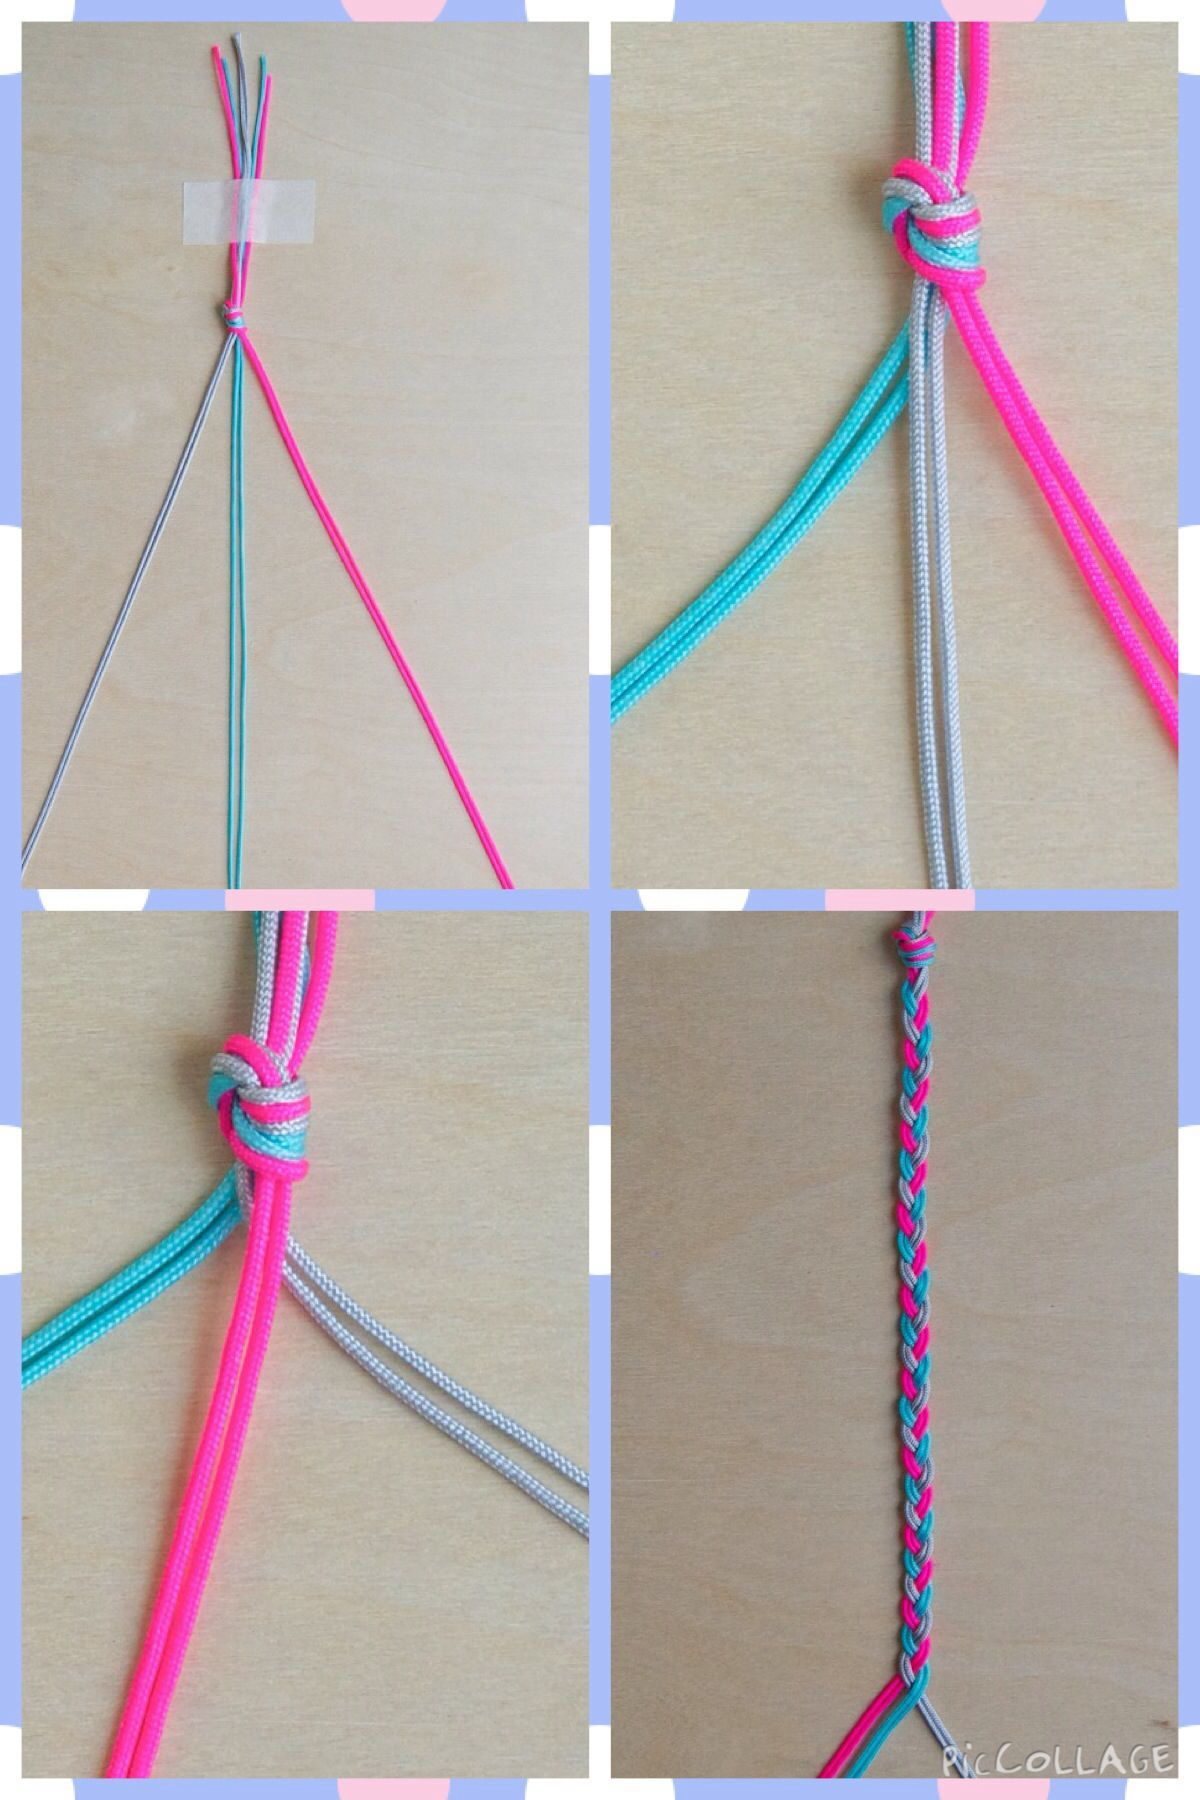 Braided Friendship Bracelets for Valentine's Day how to edited 6004  craftIdea org is part of Braided friendship bracelets -